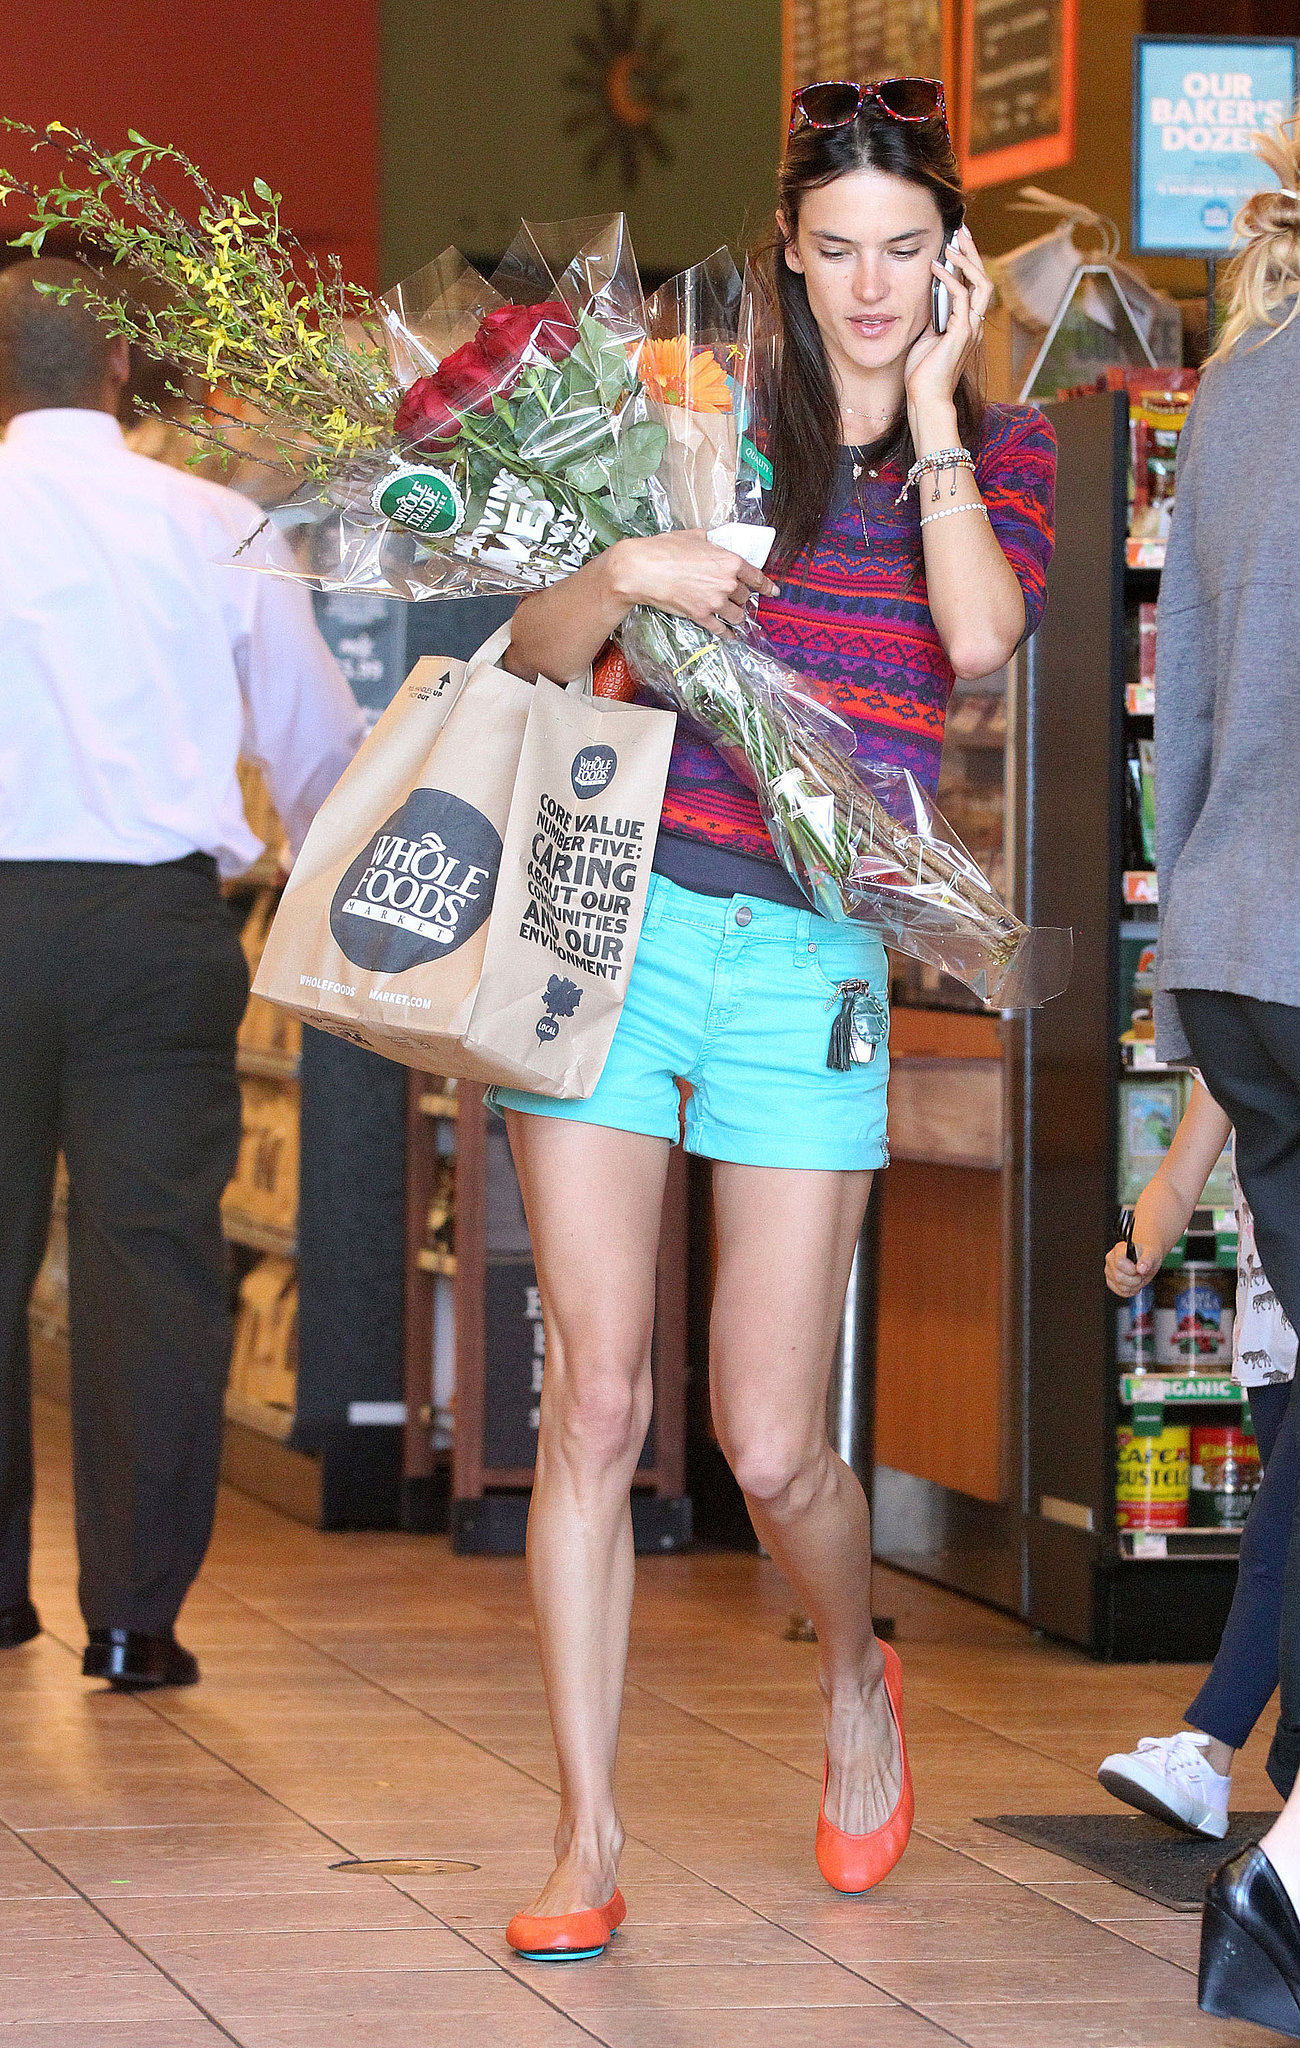 Alessandra stood out as she shopped for groceries in a colorful ensemble, which included turquoise denim shorts by Sanctuary, a printed sweater, and orange ballet flats.